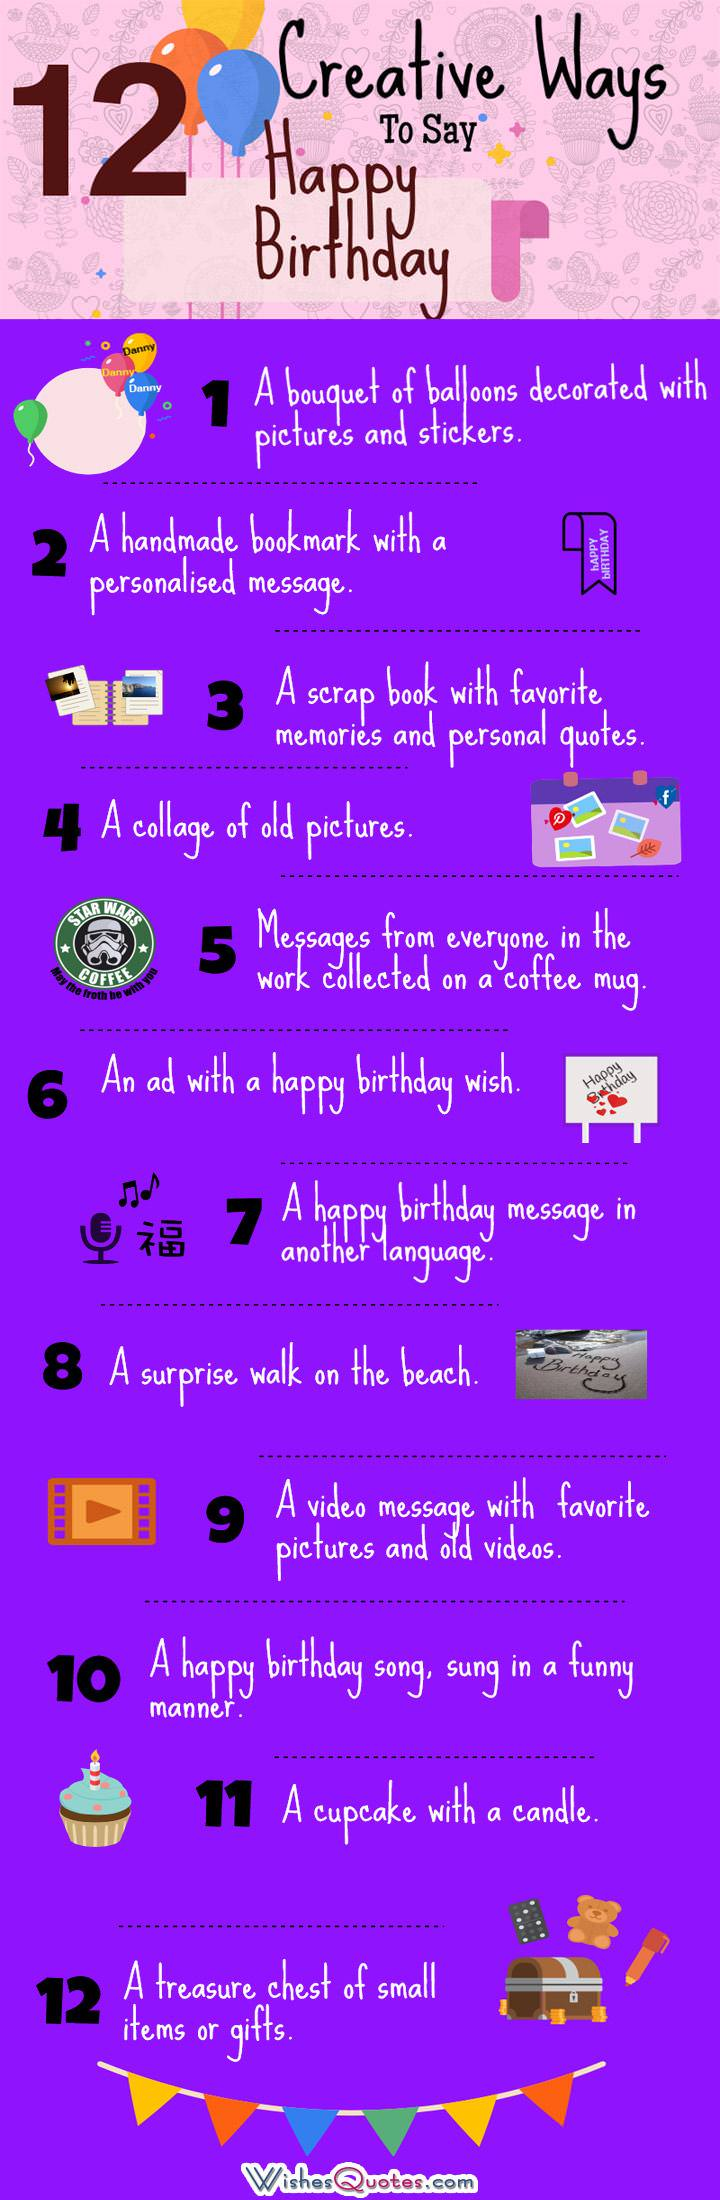 Stunning Different Languages Ny Ways To Say Happy Birthday Ways To Say Happy Birthday To Your Boss Ways To Say Happy Birthday gifts Ways To Say Happy Birthday